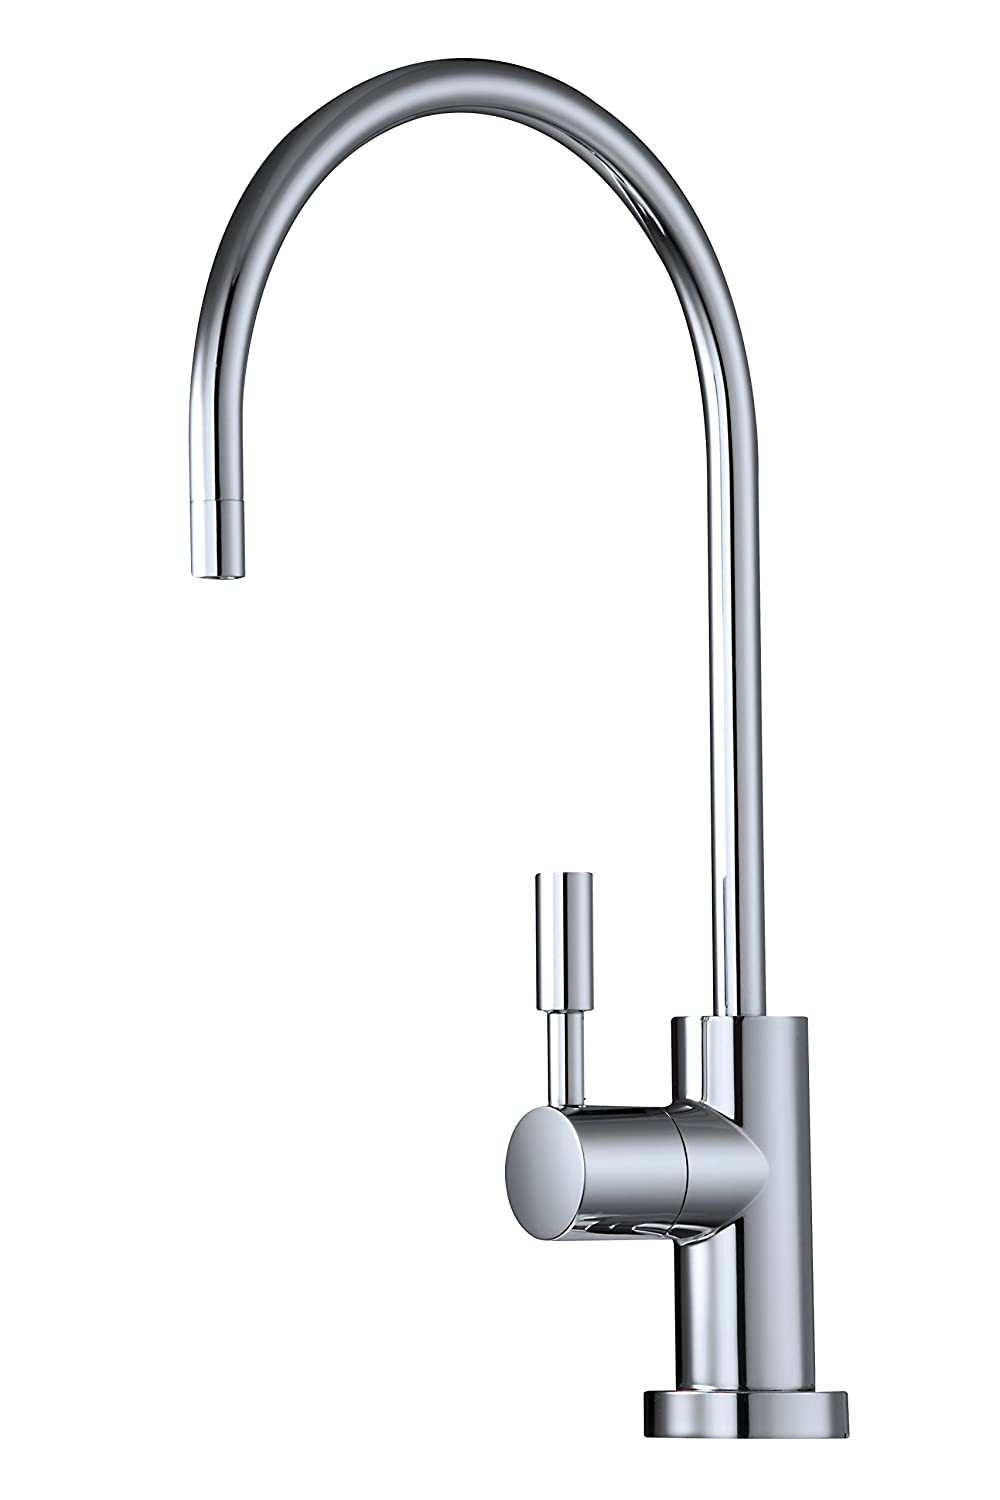 Avanti Designer Kitchen Bar Sink Reverse Osmosis RO Filtration Drinking Water Faucet for 3 8 supply tube – NSF certified, ceramic disk, lead-free, non-air gap – RF888-06CP Polished Chrome